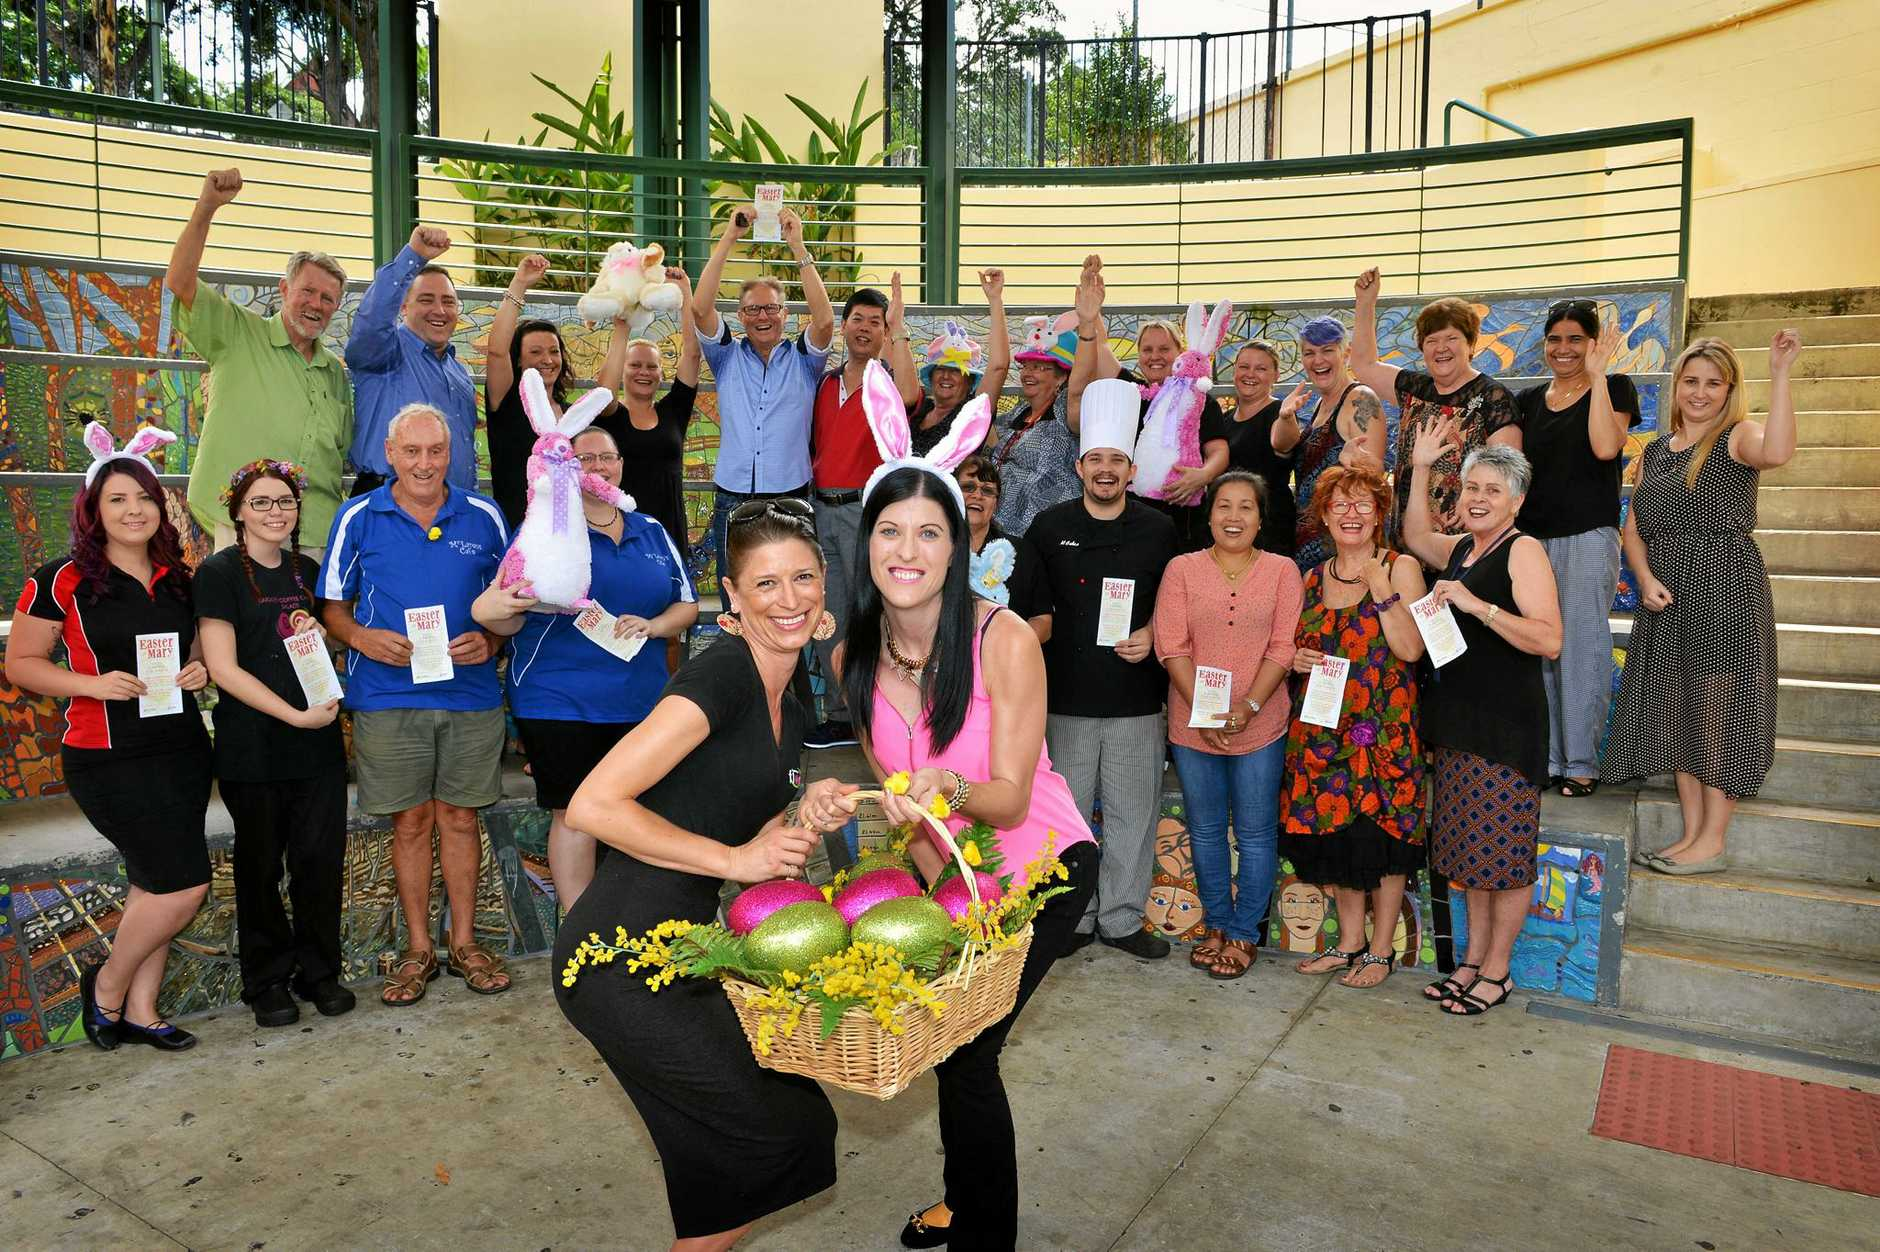 Mary Street, Gympie traders prepare for Easter on Mary on Wednesday, April 1st from 5.00pm to 9.00pm. In front from left is Jan Murphy from Karinya Florist and Gifts with Tracey Clarke from Unearthed Street Wear.     Photo Greg Miller / Gympie Times